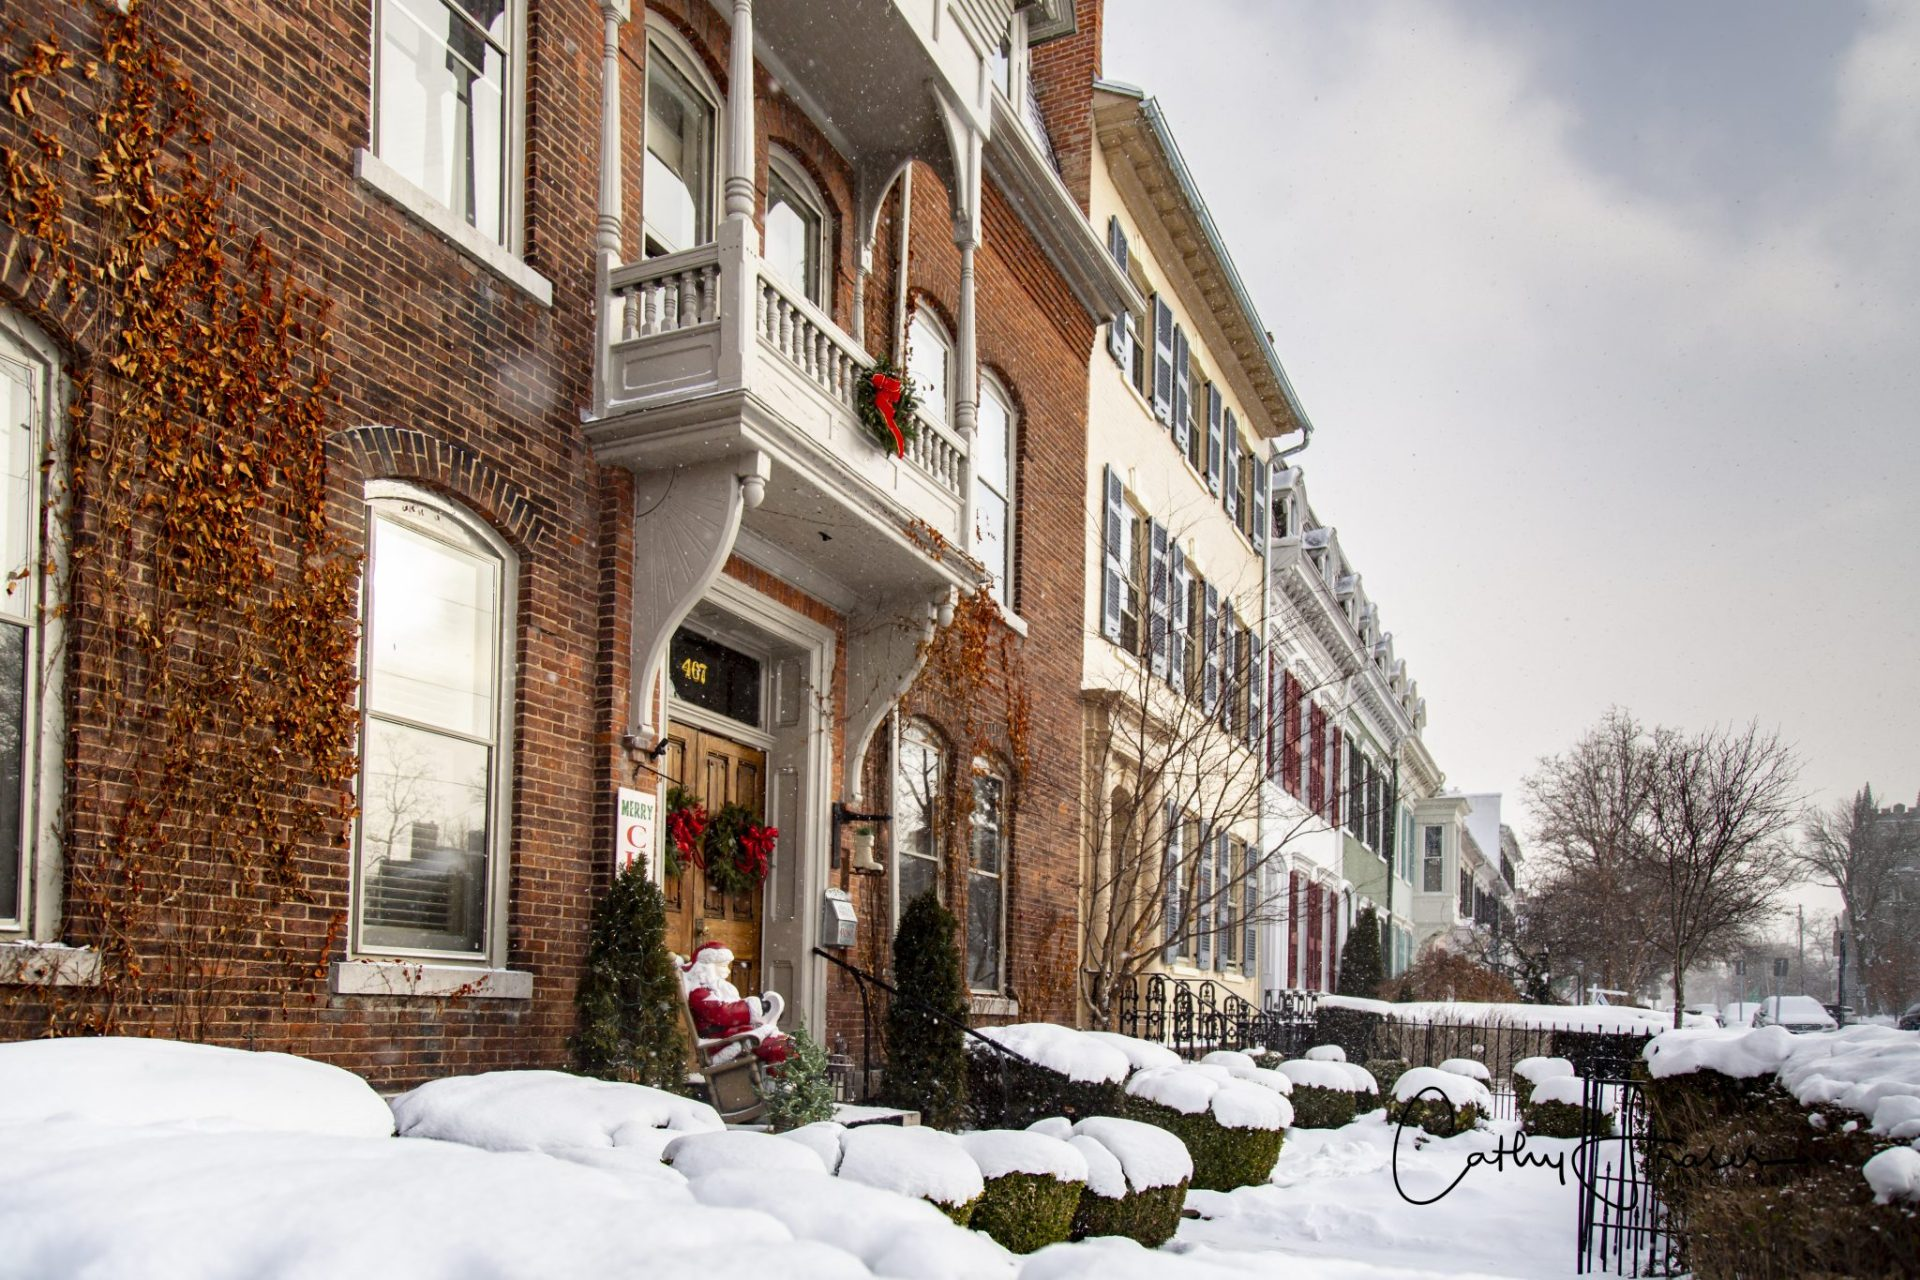 Lifestyle Photography of a residential area after a recent snowfall in New York